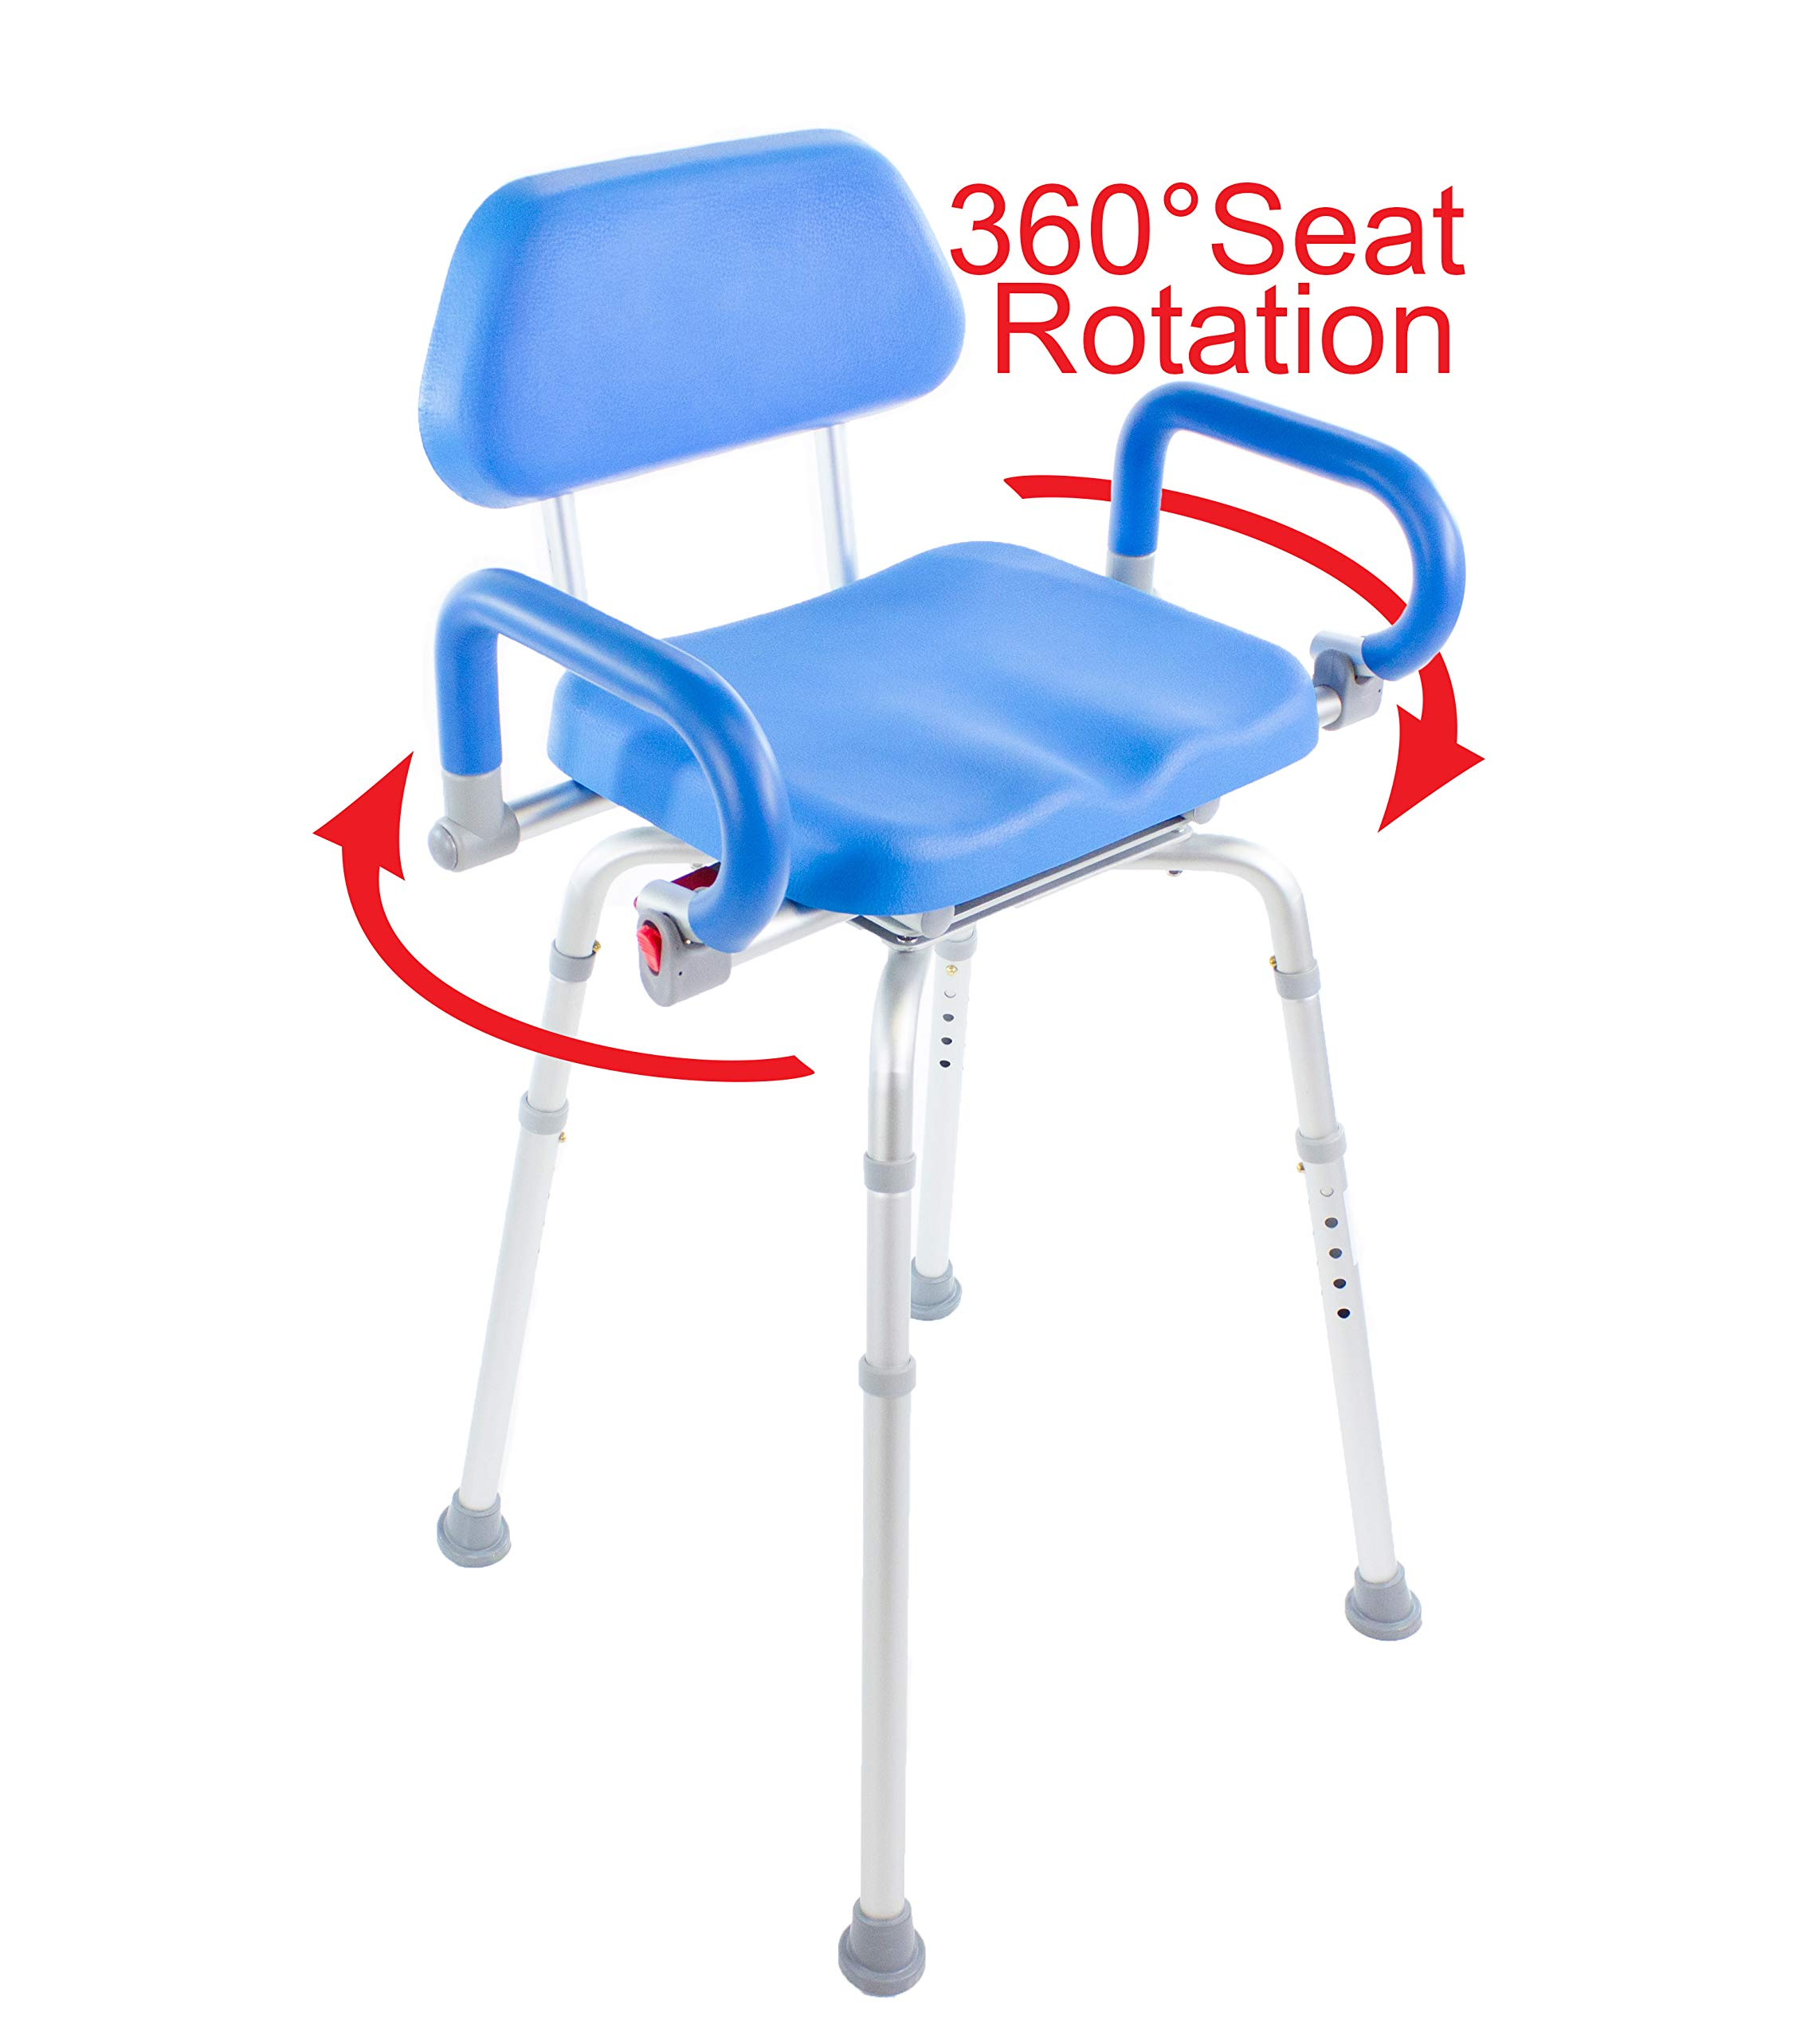 Hip Chair, Revolver(tm) Premium, Padded, Height Adjustable, SEAT-Angle Adjustable Hip Chair with Swivel Seat and Swing Away Arm Rests. Doctor and Rehab Specialist Recommended.